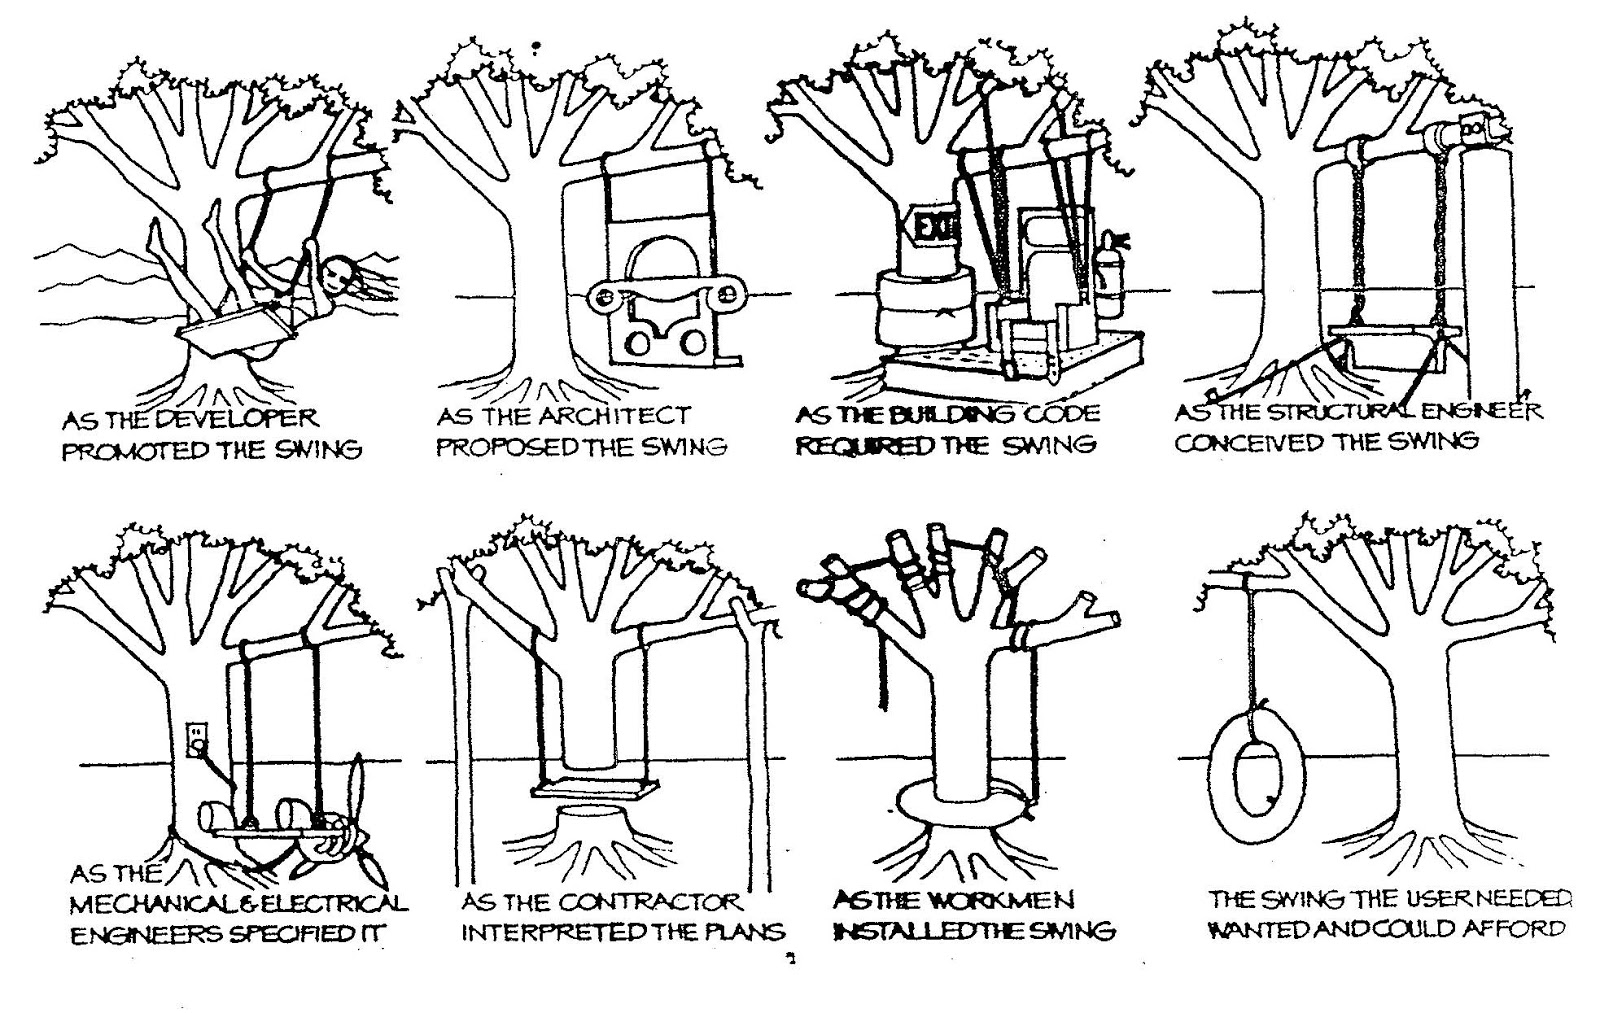 8 Types Of Innovation moreover Project Management Cartoons further Hochzeit 26 furthermore Asahi   or jp  pu4i Aok funnydata disinteg customer besides Treeswing. on tree swing cartoon project management